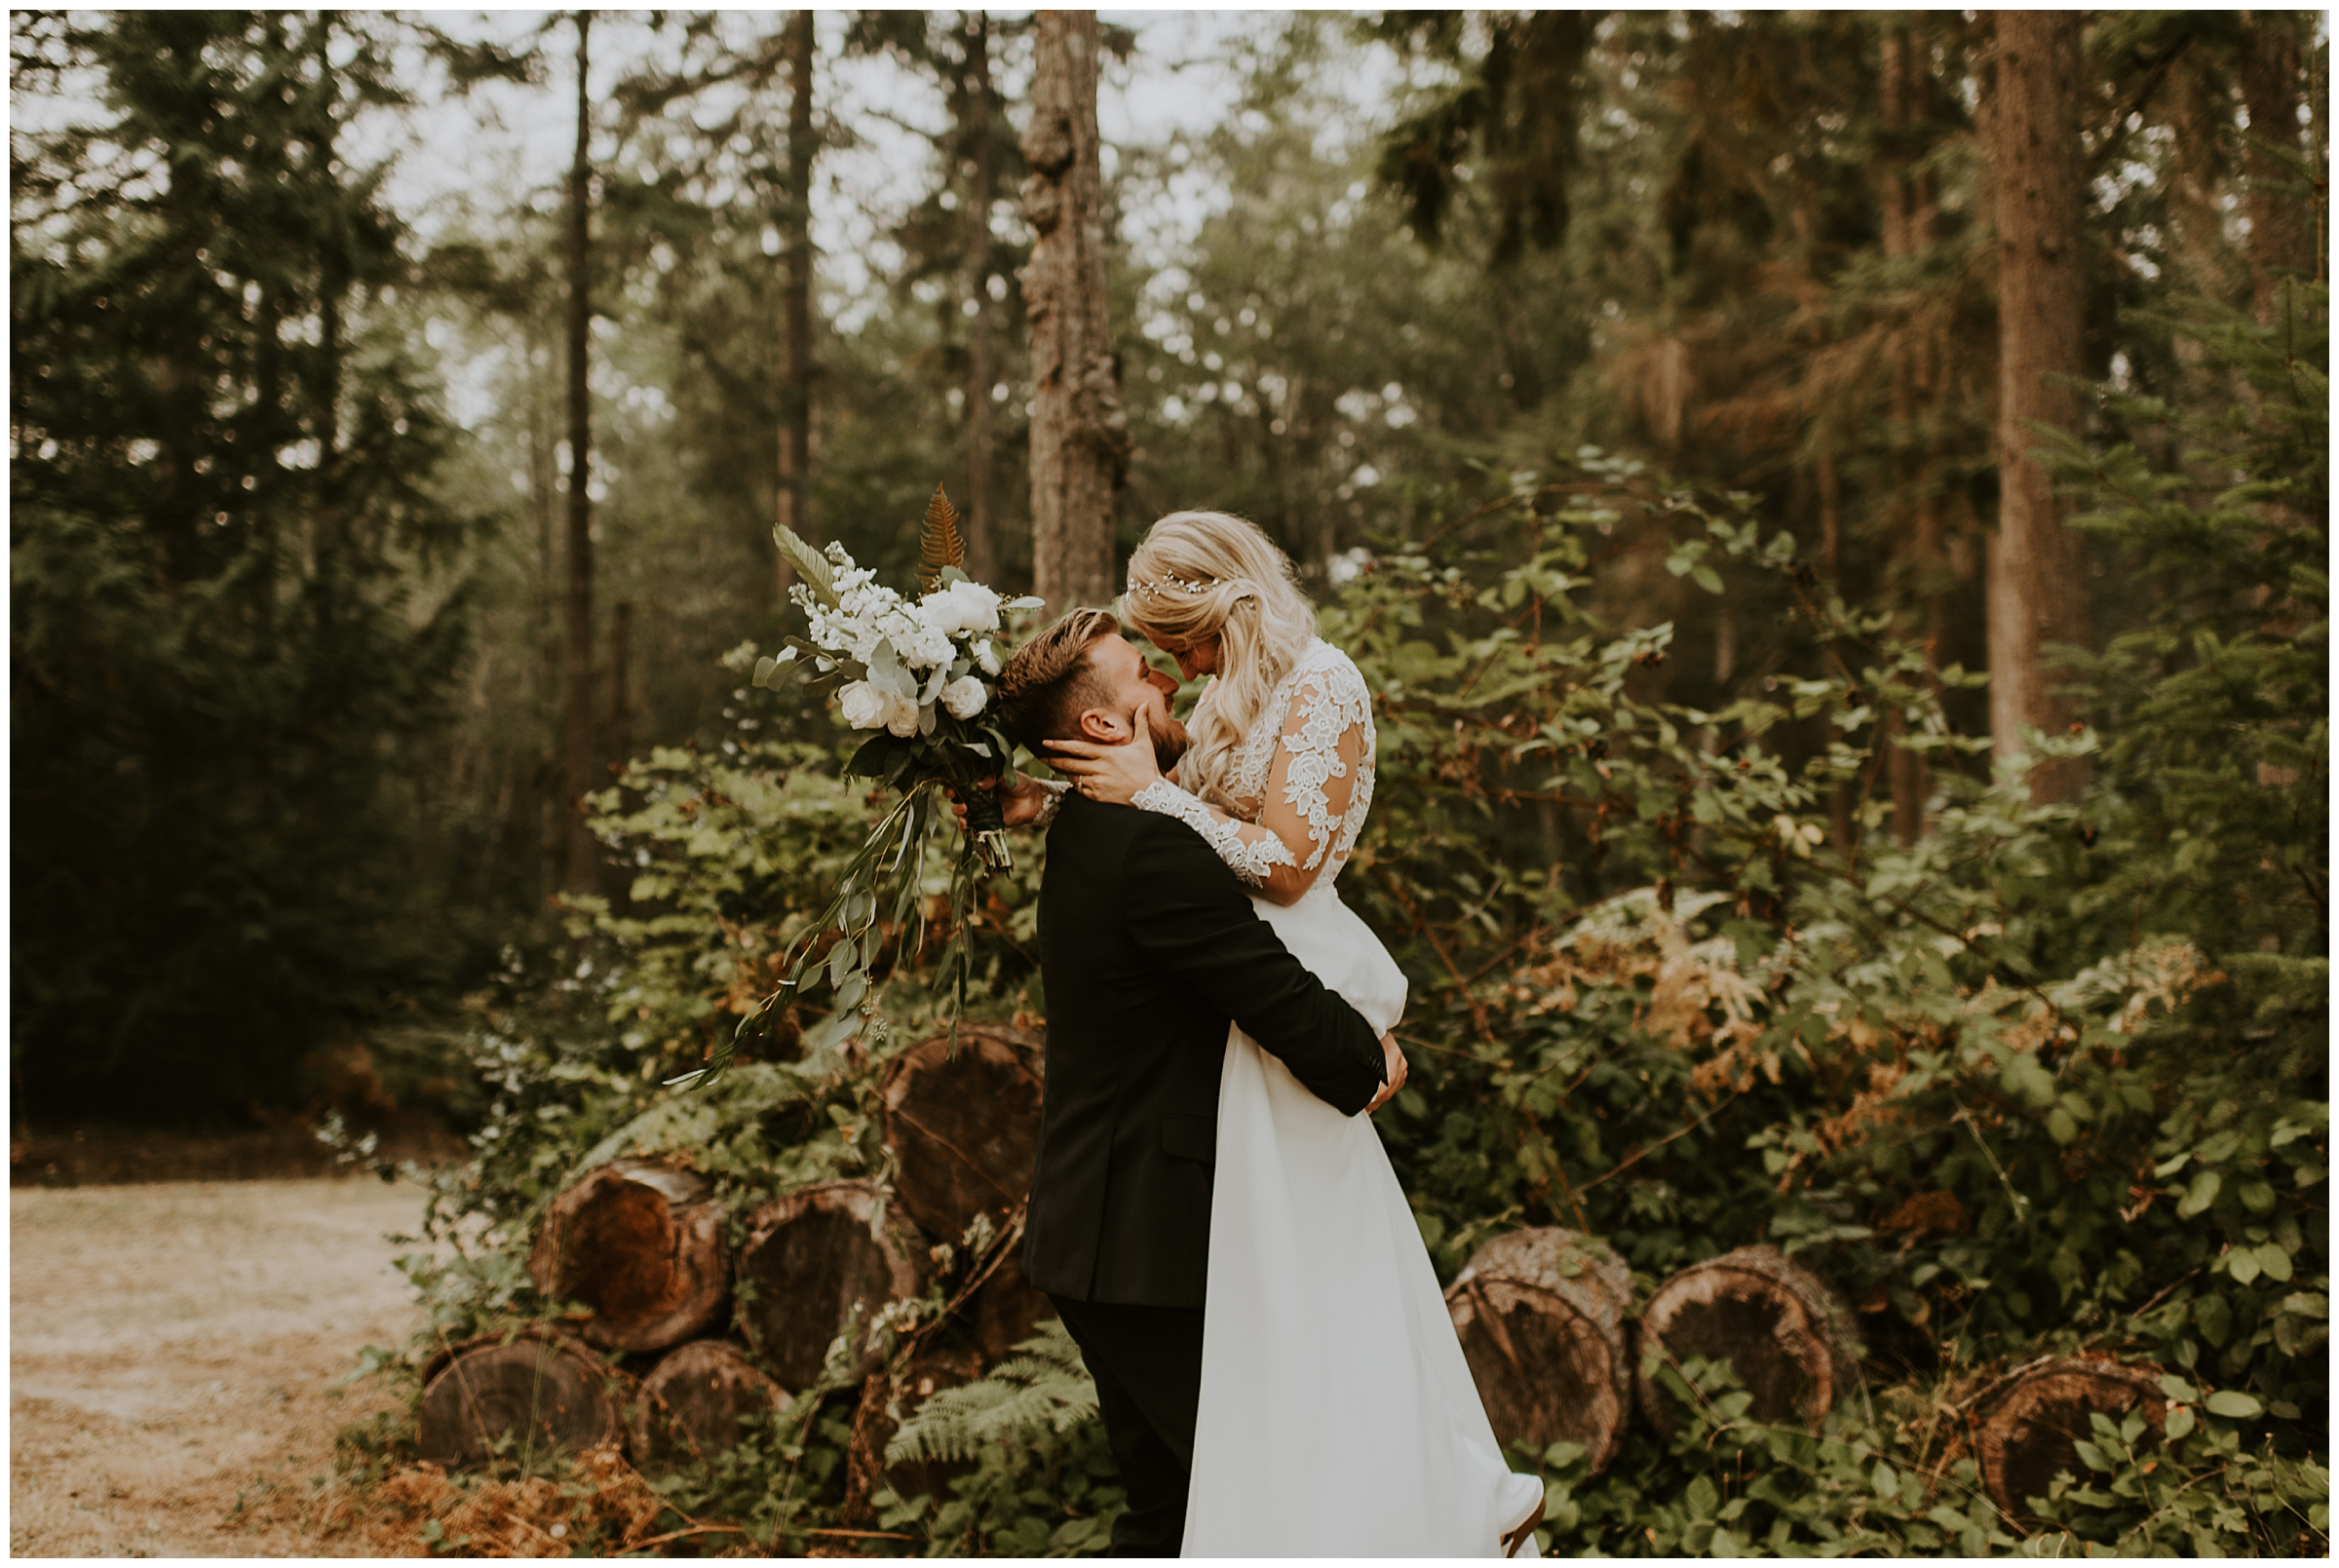 Cameo + Dawson's romantic backyard wedding in Olalla, WA by Seattle Wedding Photographer, Kamra Fuller Photography